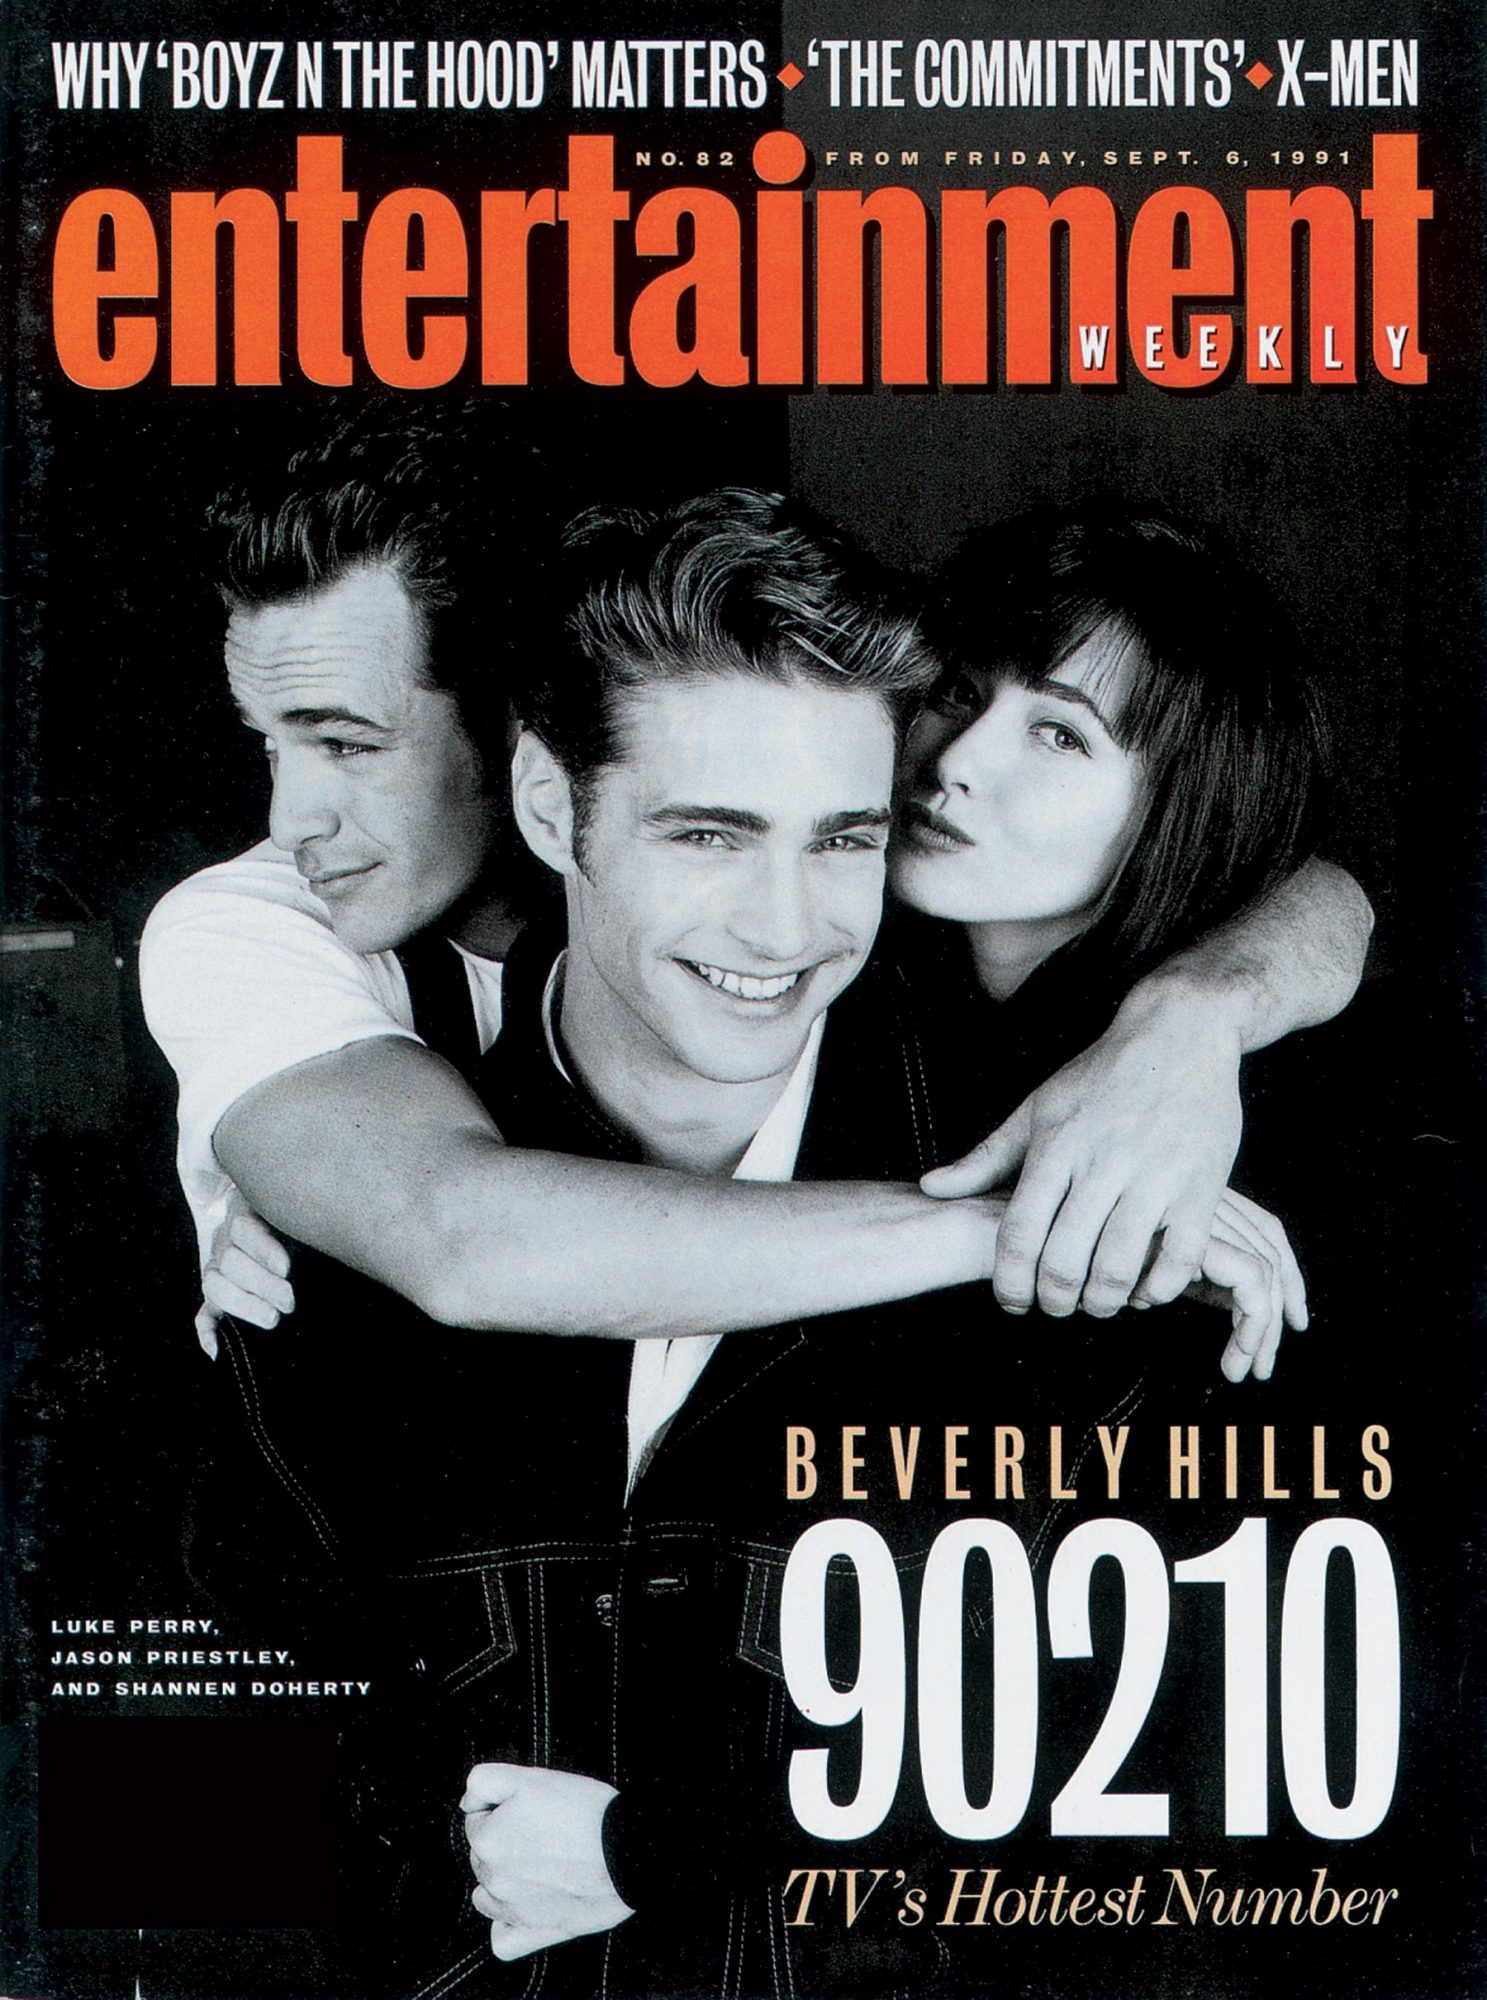 Entertainment WeeklySeptember 6, 1991# 82